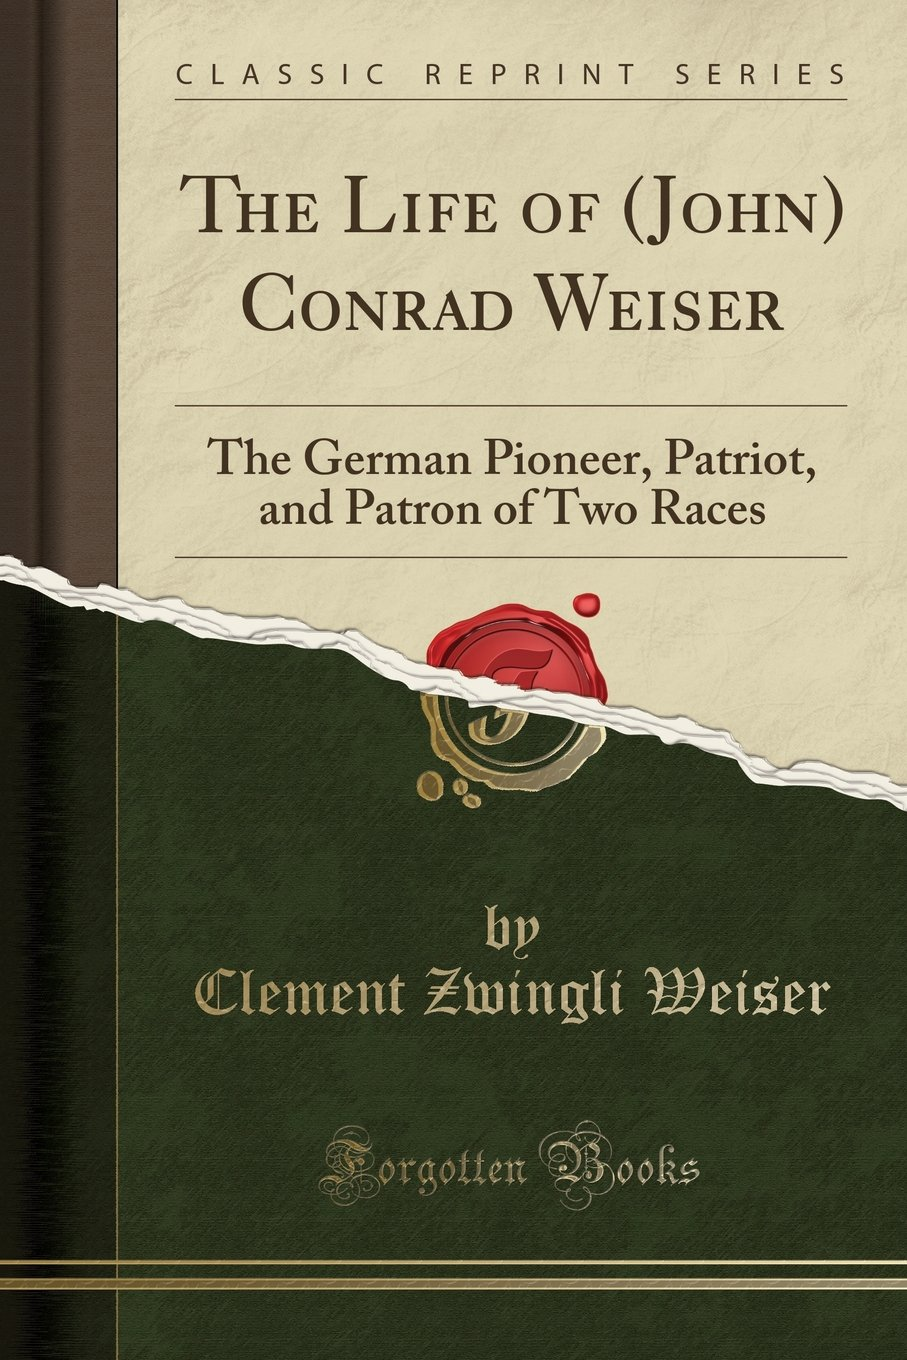 The Life of (John) Conrad Weiser: The German Pioneer, Patriot, and Patron of Two Races (Classic Reprint) ebook